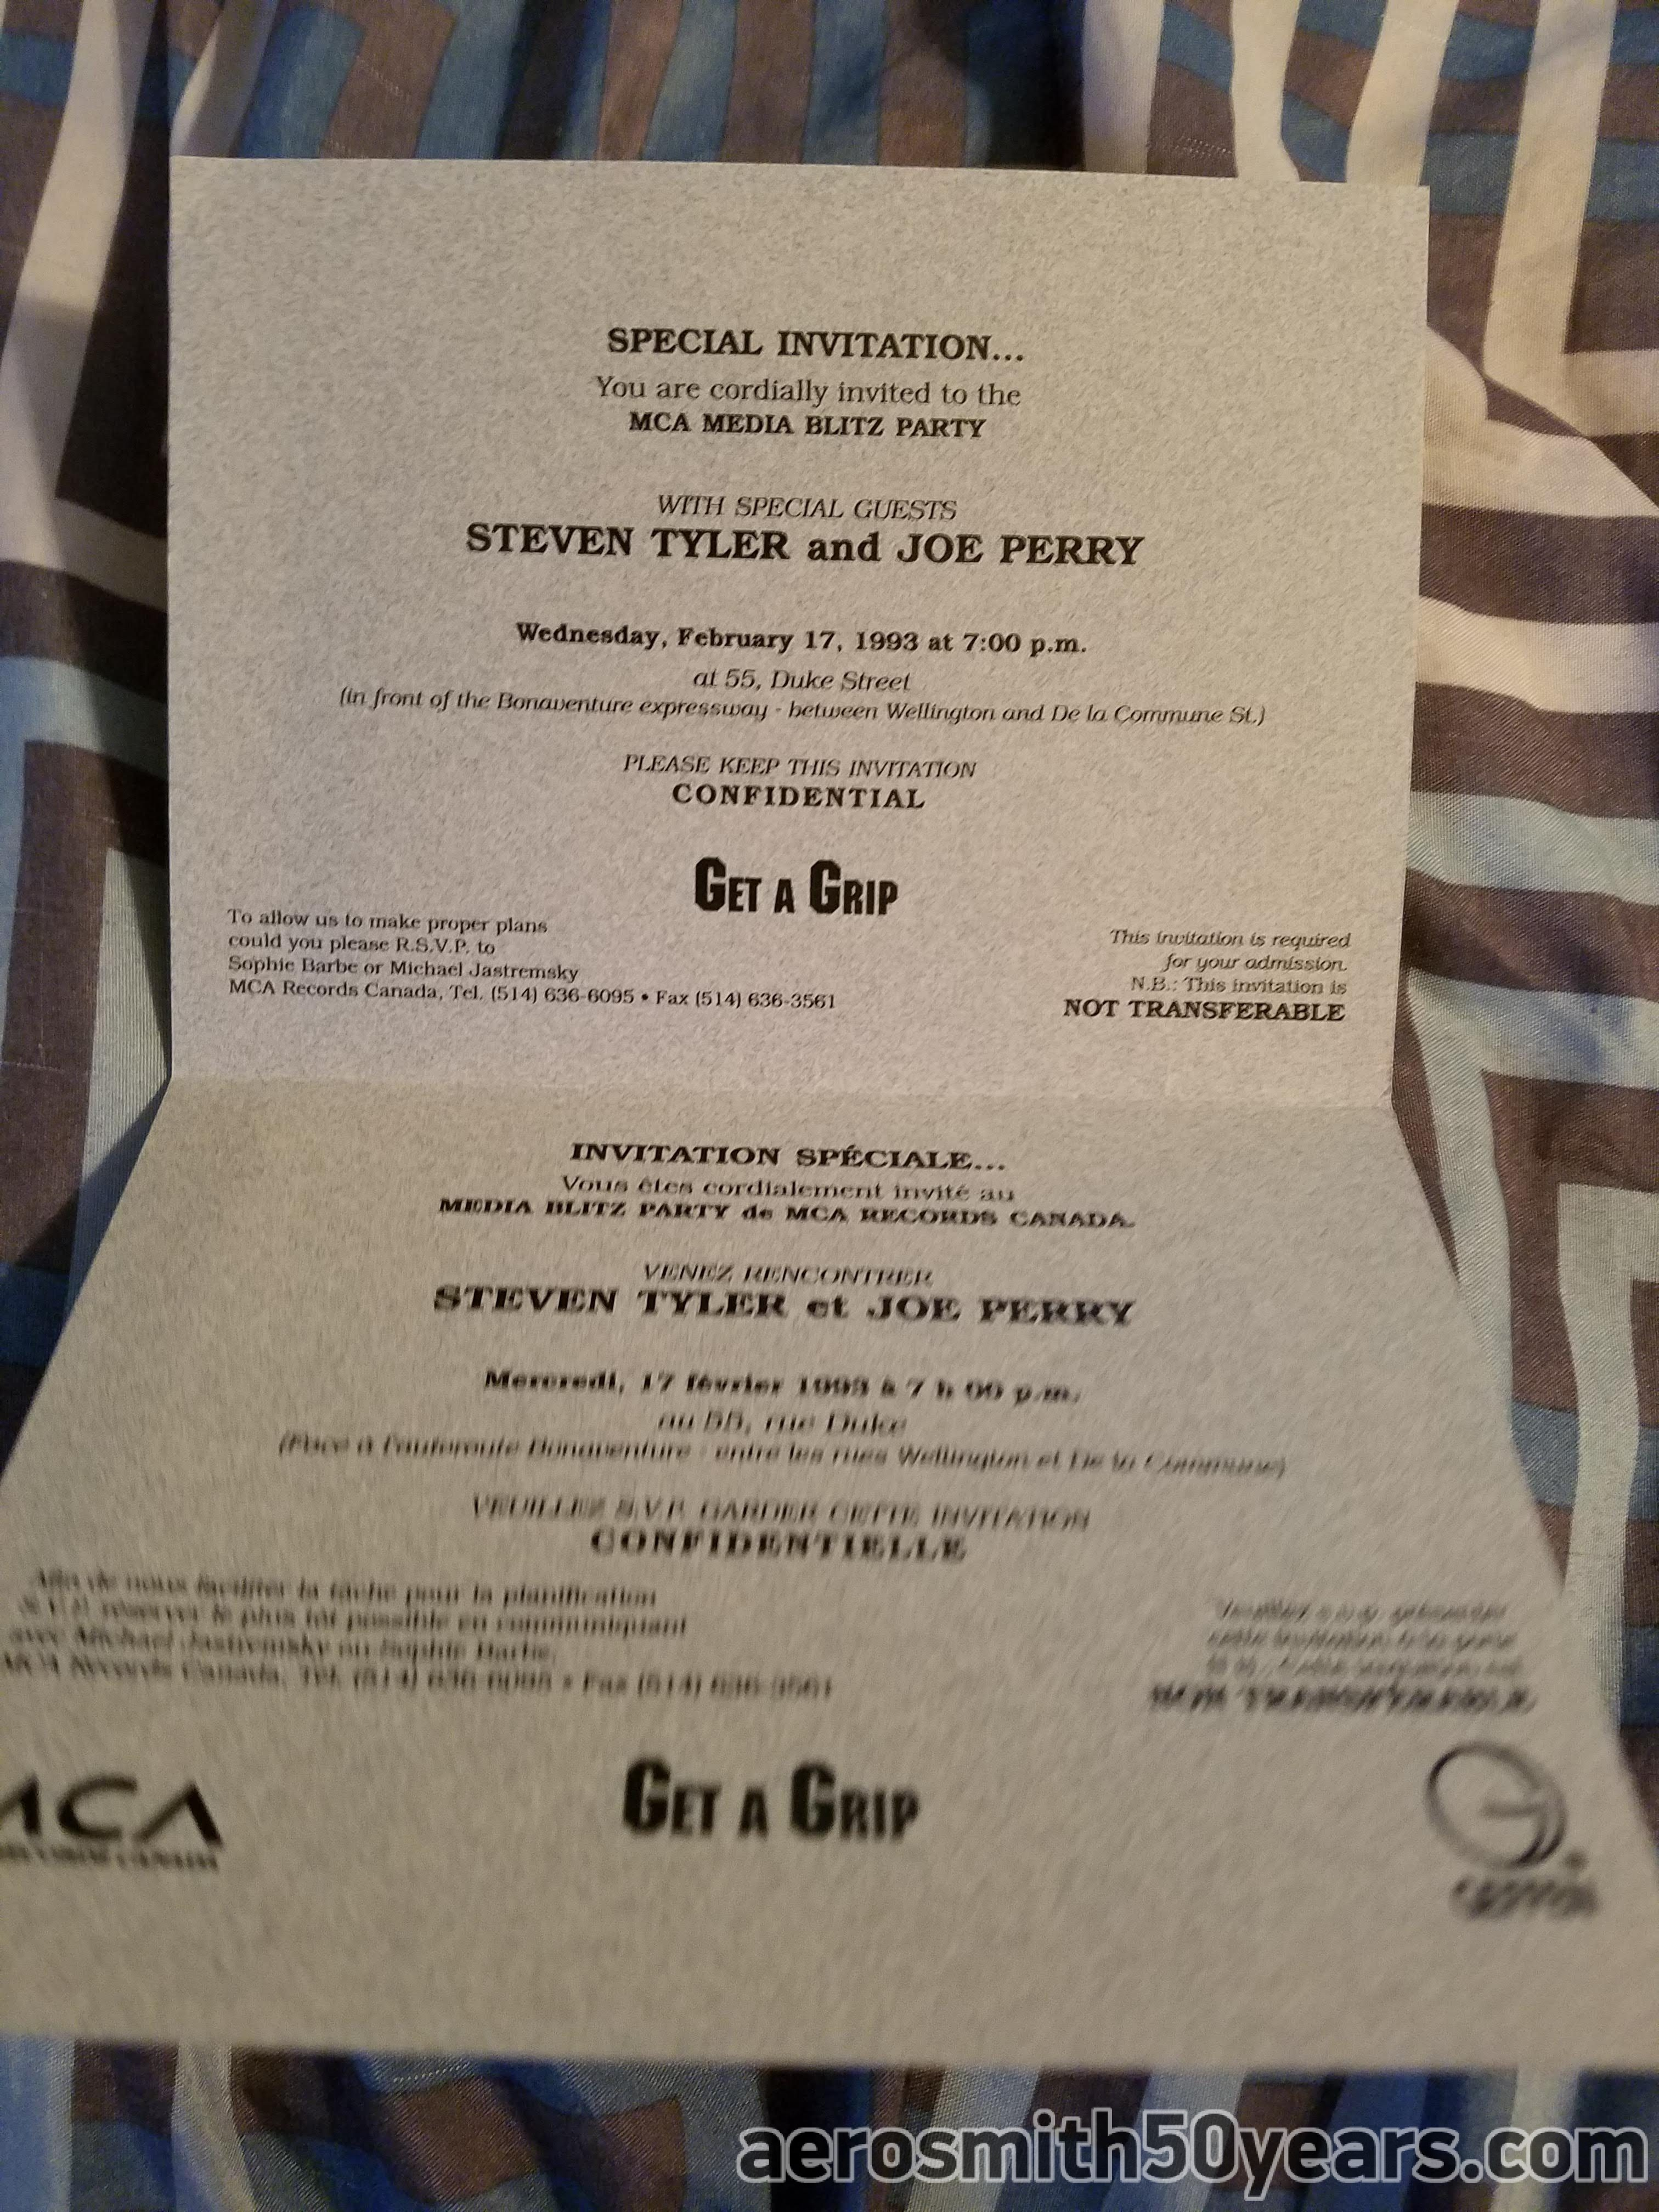 Get A Grip -February 17, 1993  Invitation For Canadian MCA Media Party.